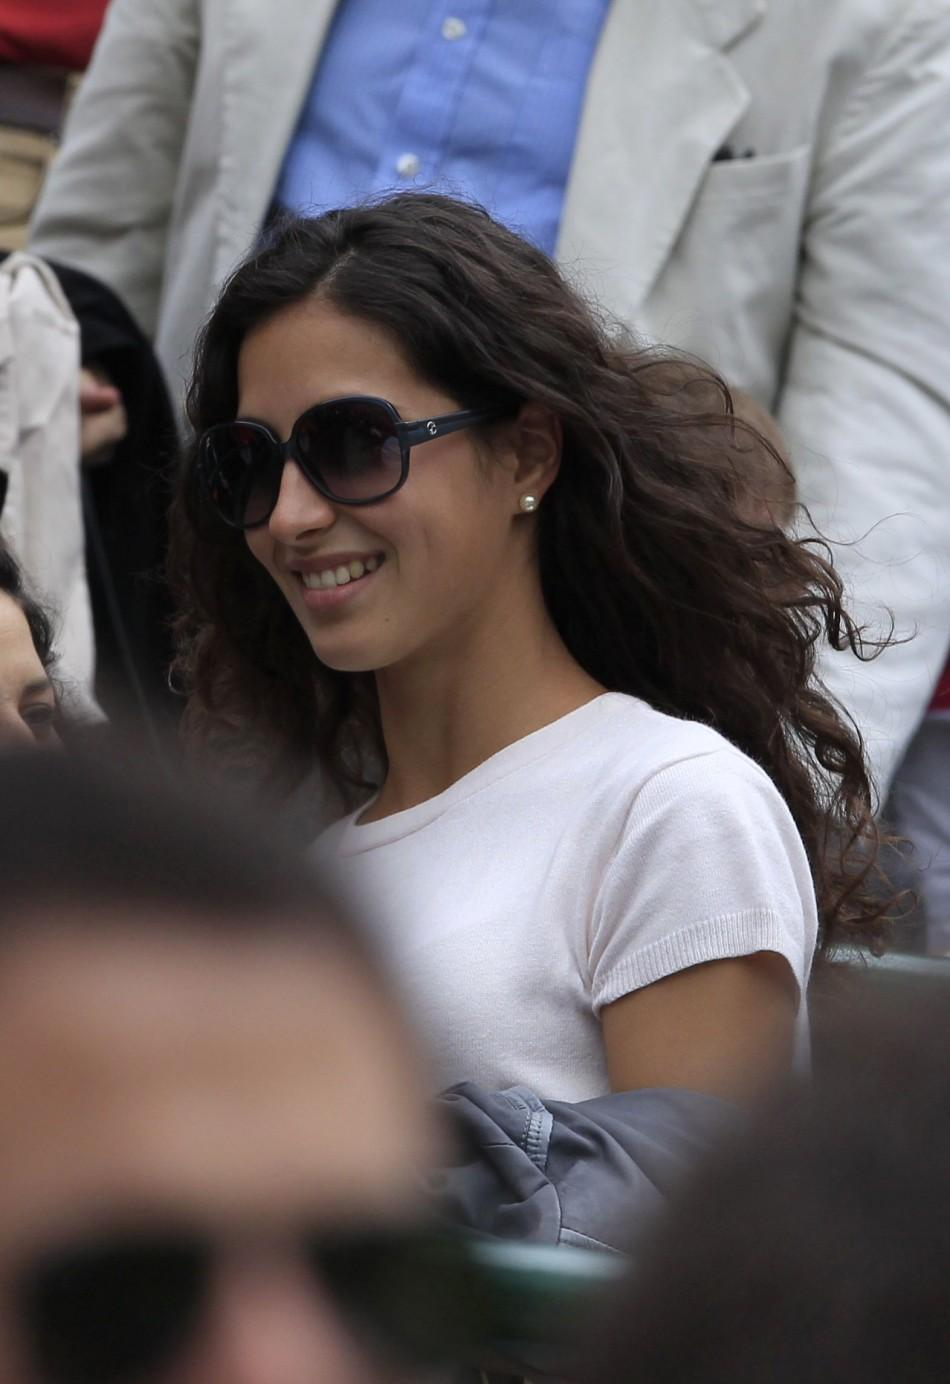 Maria Francisca Perello, the girlfriend of Rafael Nadal of Spain, leaves Court 1 after Nadal's match against Gilles Muller of Luxembourg at the Wimbledon tennis championships in London